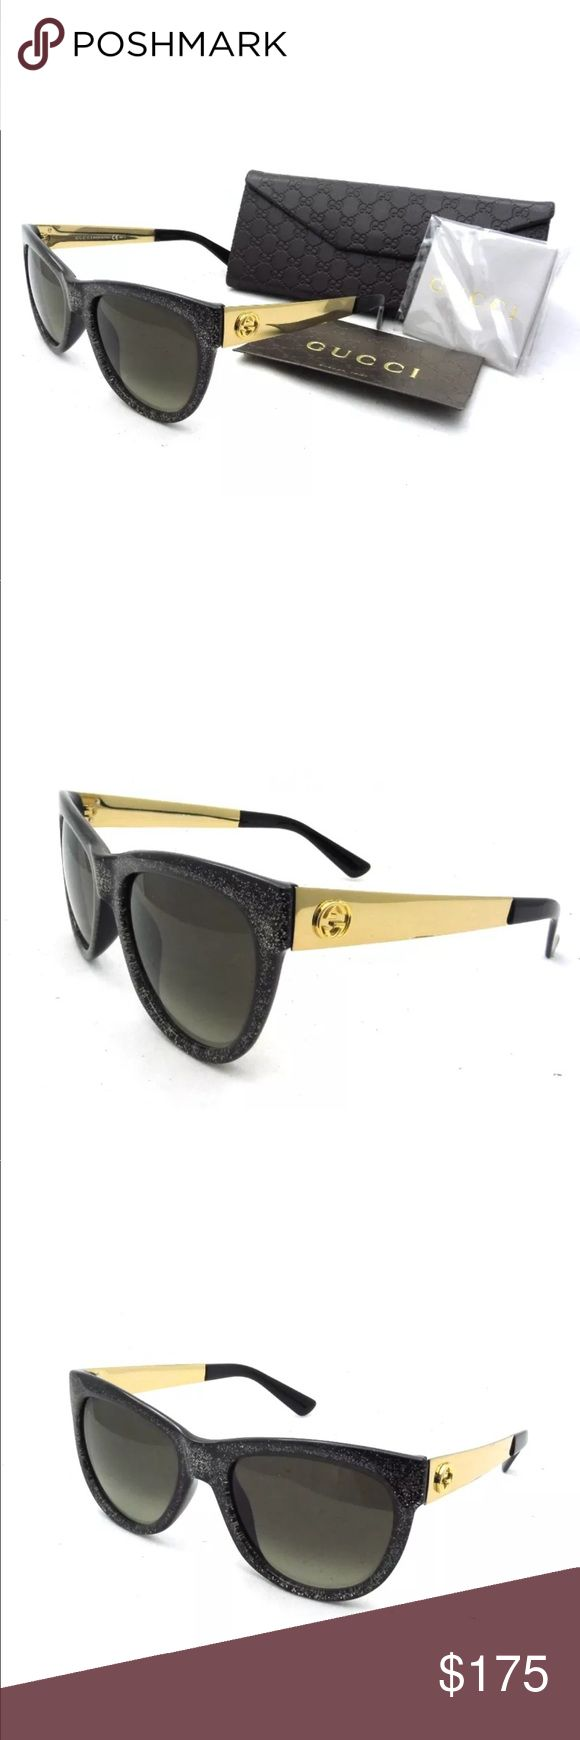 Women's Gucci Glasses Brand New! Never Used!  New AUTHENTIC Gucci Glitter Black Gold Gradient Sunglasses GG3739 N S VJZ HA Made In Itlay What's include: Everything in the first pic, Hard Case, Cleaning cloth, certificate card  *All our brand name product are shipped to us from the brand  or department store distribution center in USA and have original receipt.  glitter frame, gold metal logo temple modified butterfly frame style Size: 55/19/140 imported, made in italy Gucci Accessories…